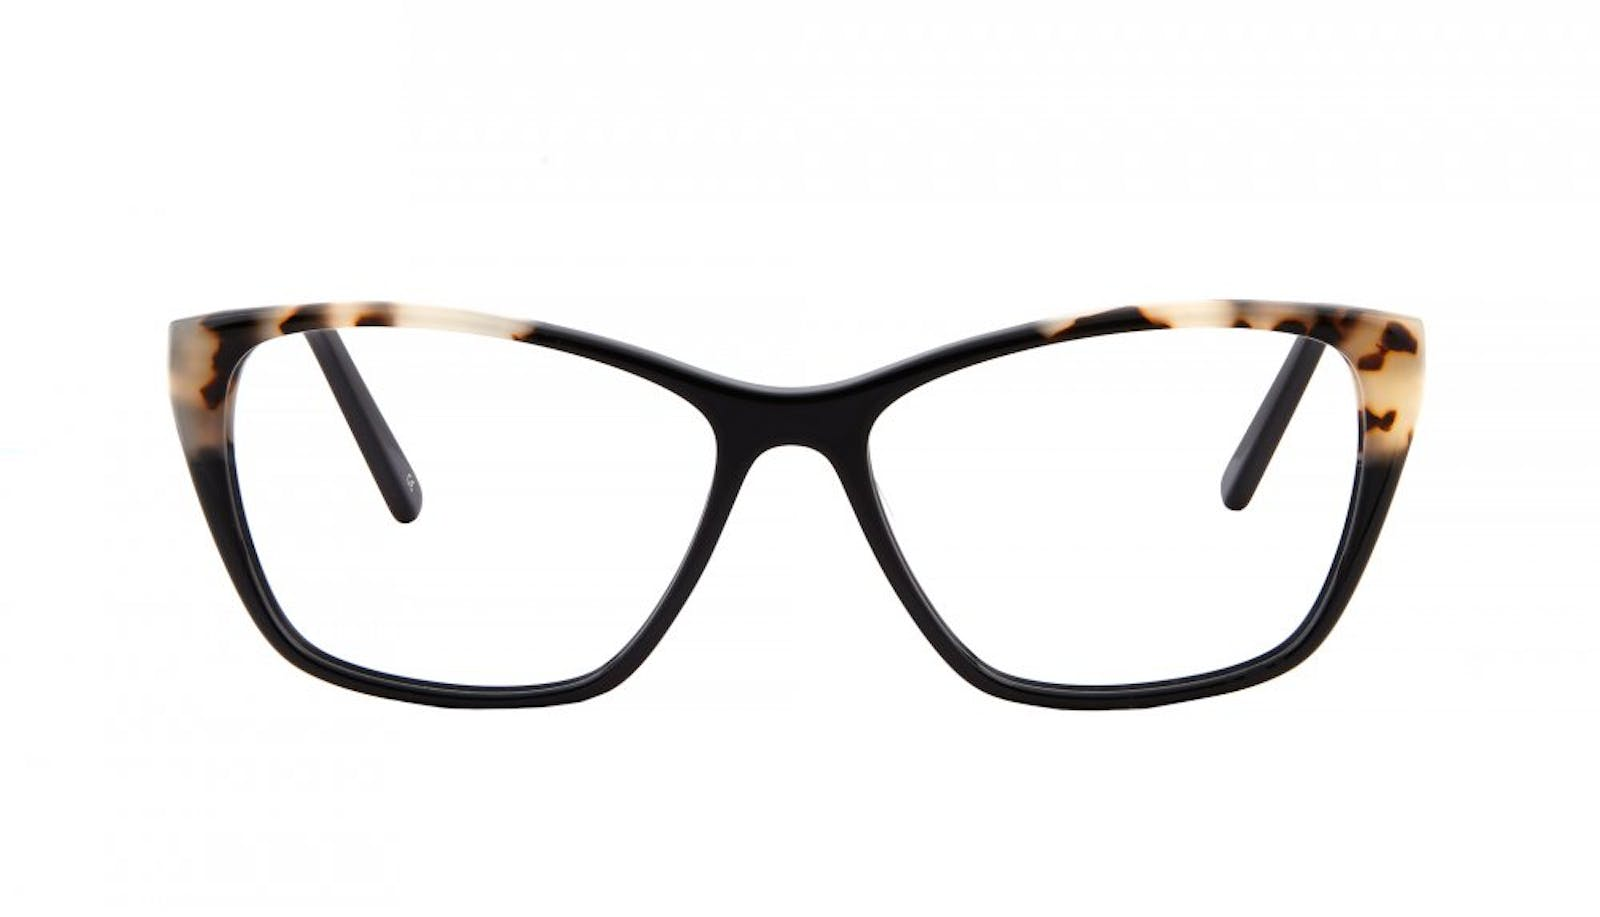 bddf48d25e Affordable Fashion Glasses Cat Eye Rectangle Eyeglasses Women Myrtle Ebony  Granite